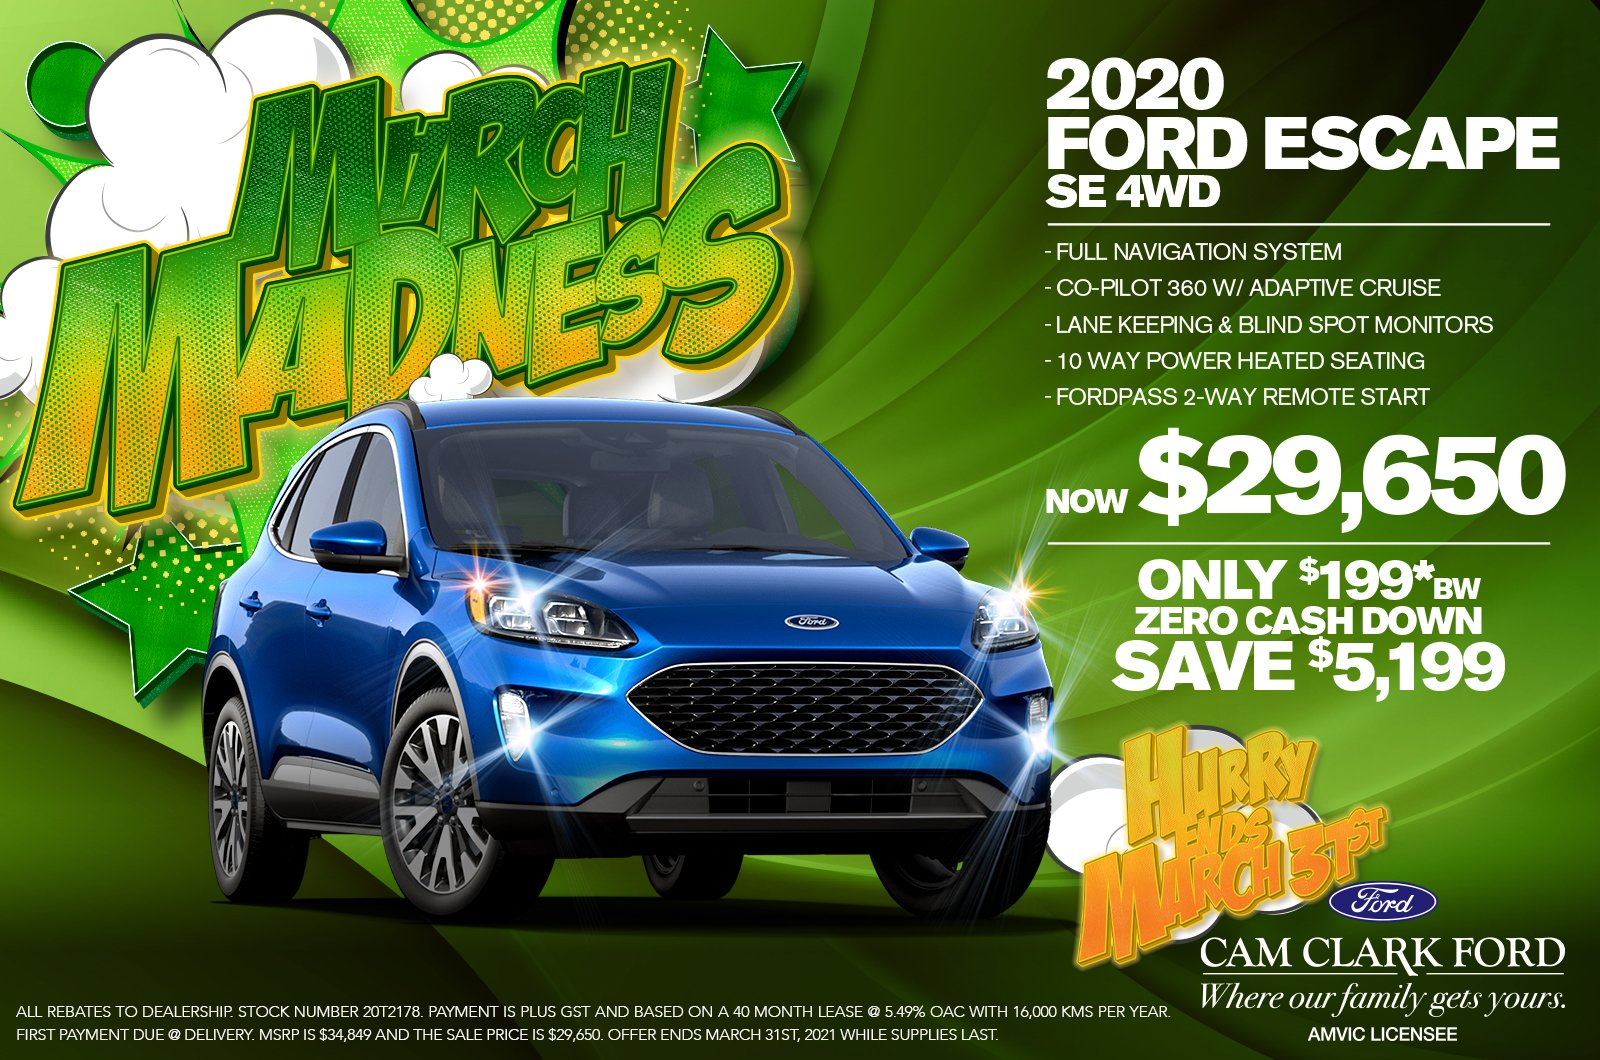 http://2020%20Ford%20Escape%20SE%204WD%20Only%20$199%20BW%20SAVE%20$5199